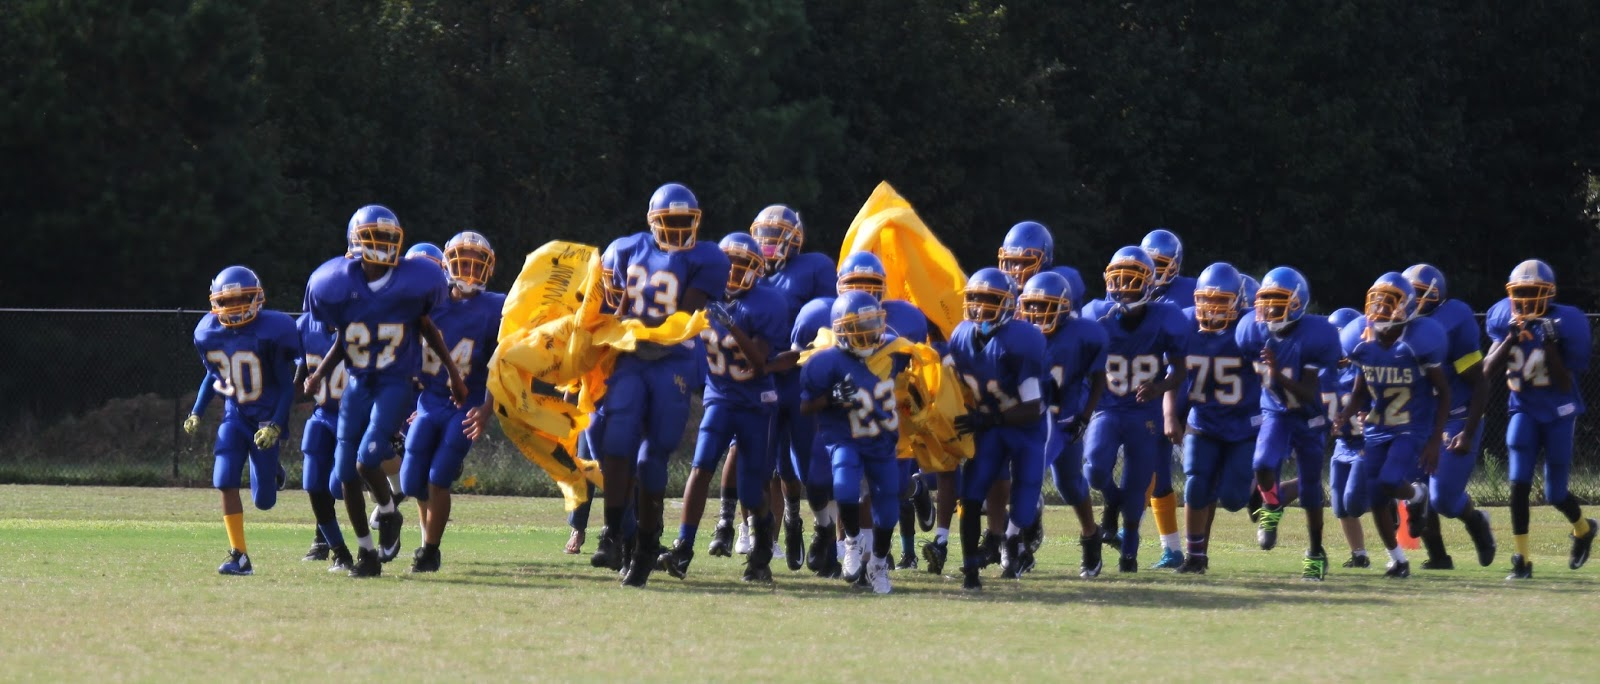 warren county screaming devils: middle school devils fall to thomson